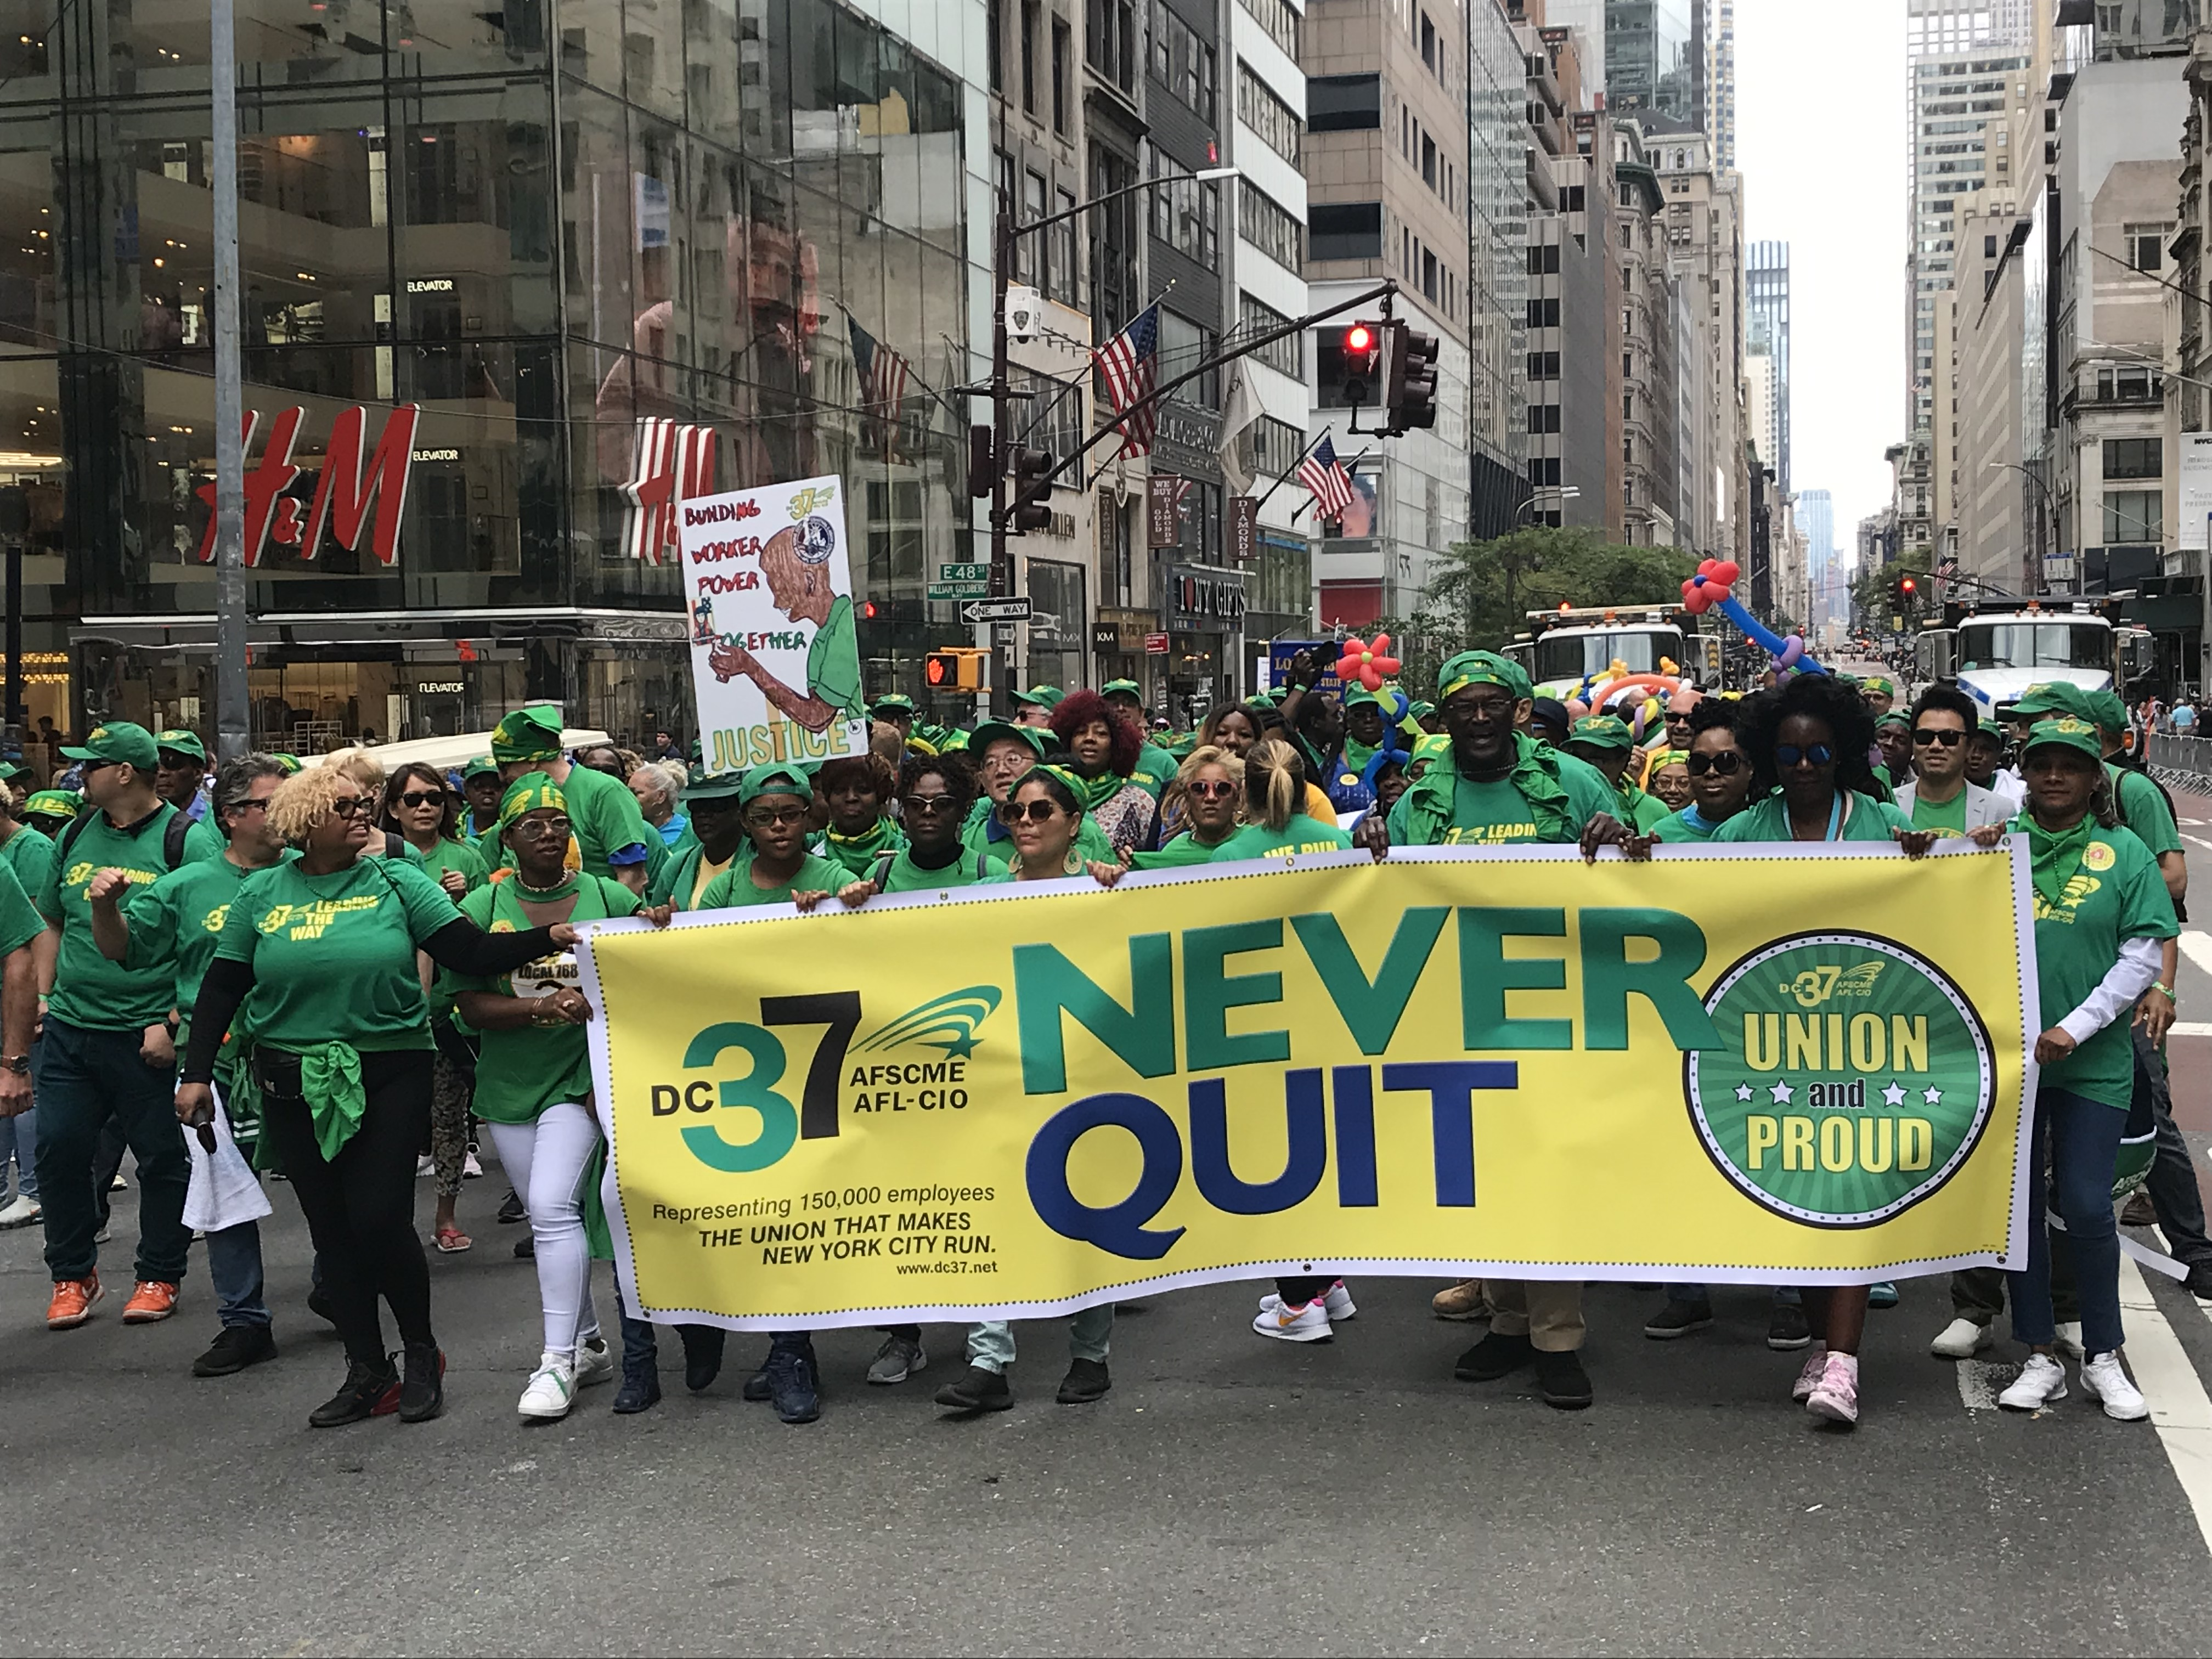 Union Leaders Talk Solidarity, Worker Rights and More At Annual Labor Day Parade